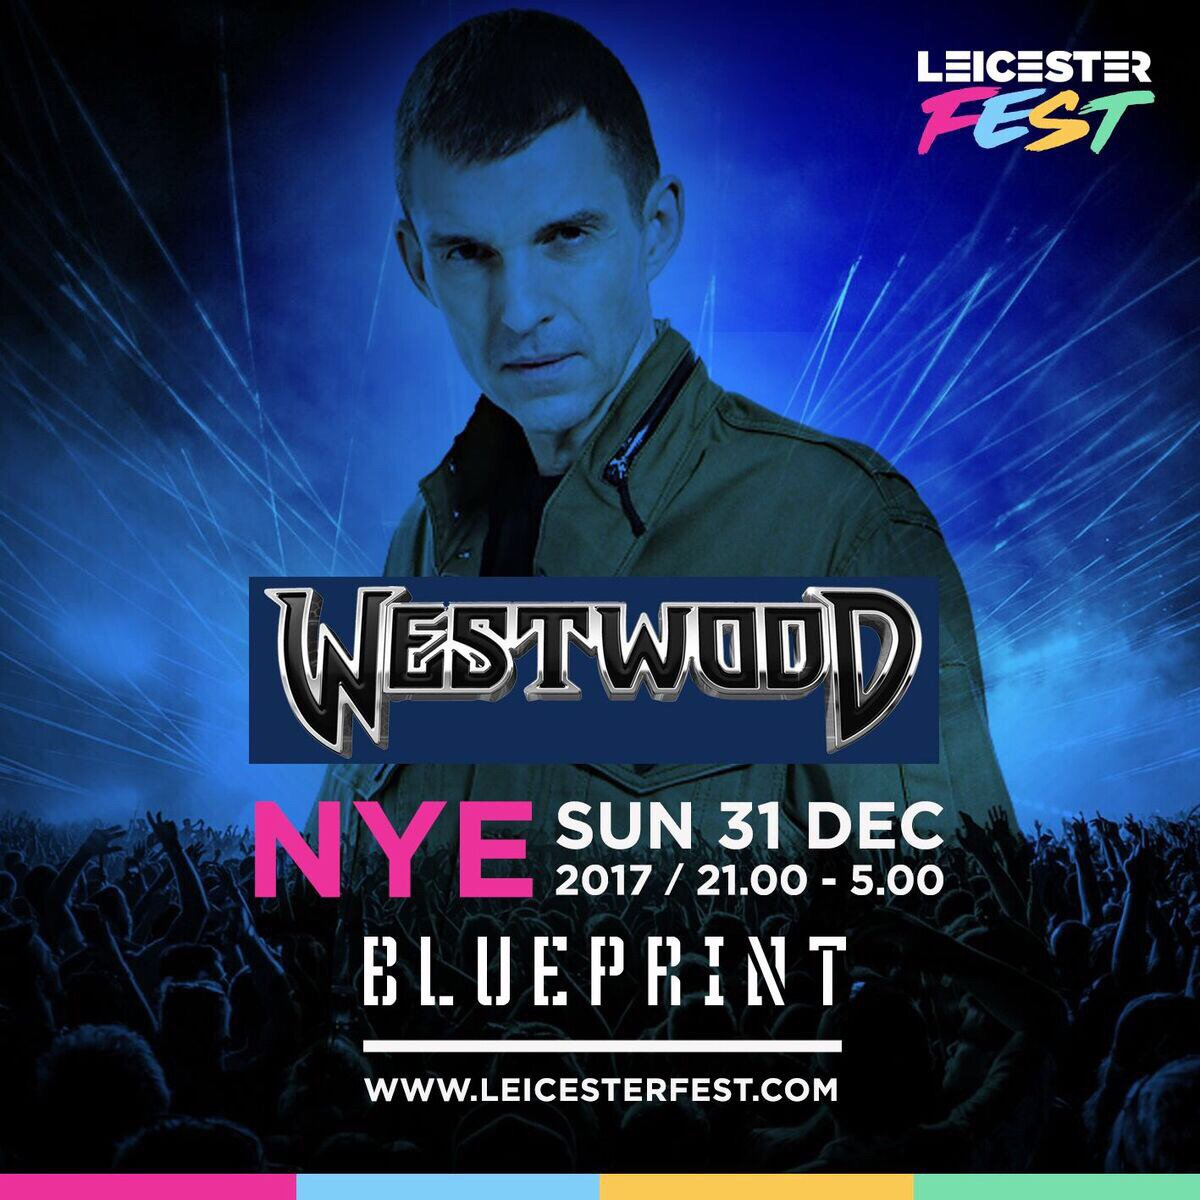 Blueprint leicester blueprintvenue twitter 0 replies 4 retweets 2 likes malvernweather Image collections